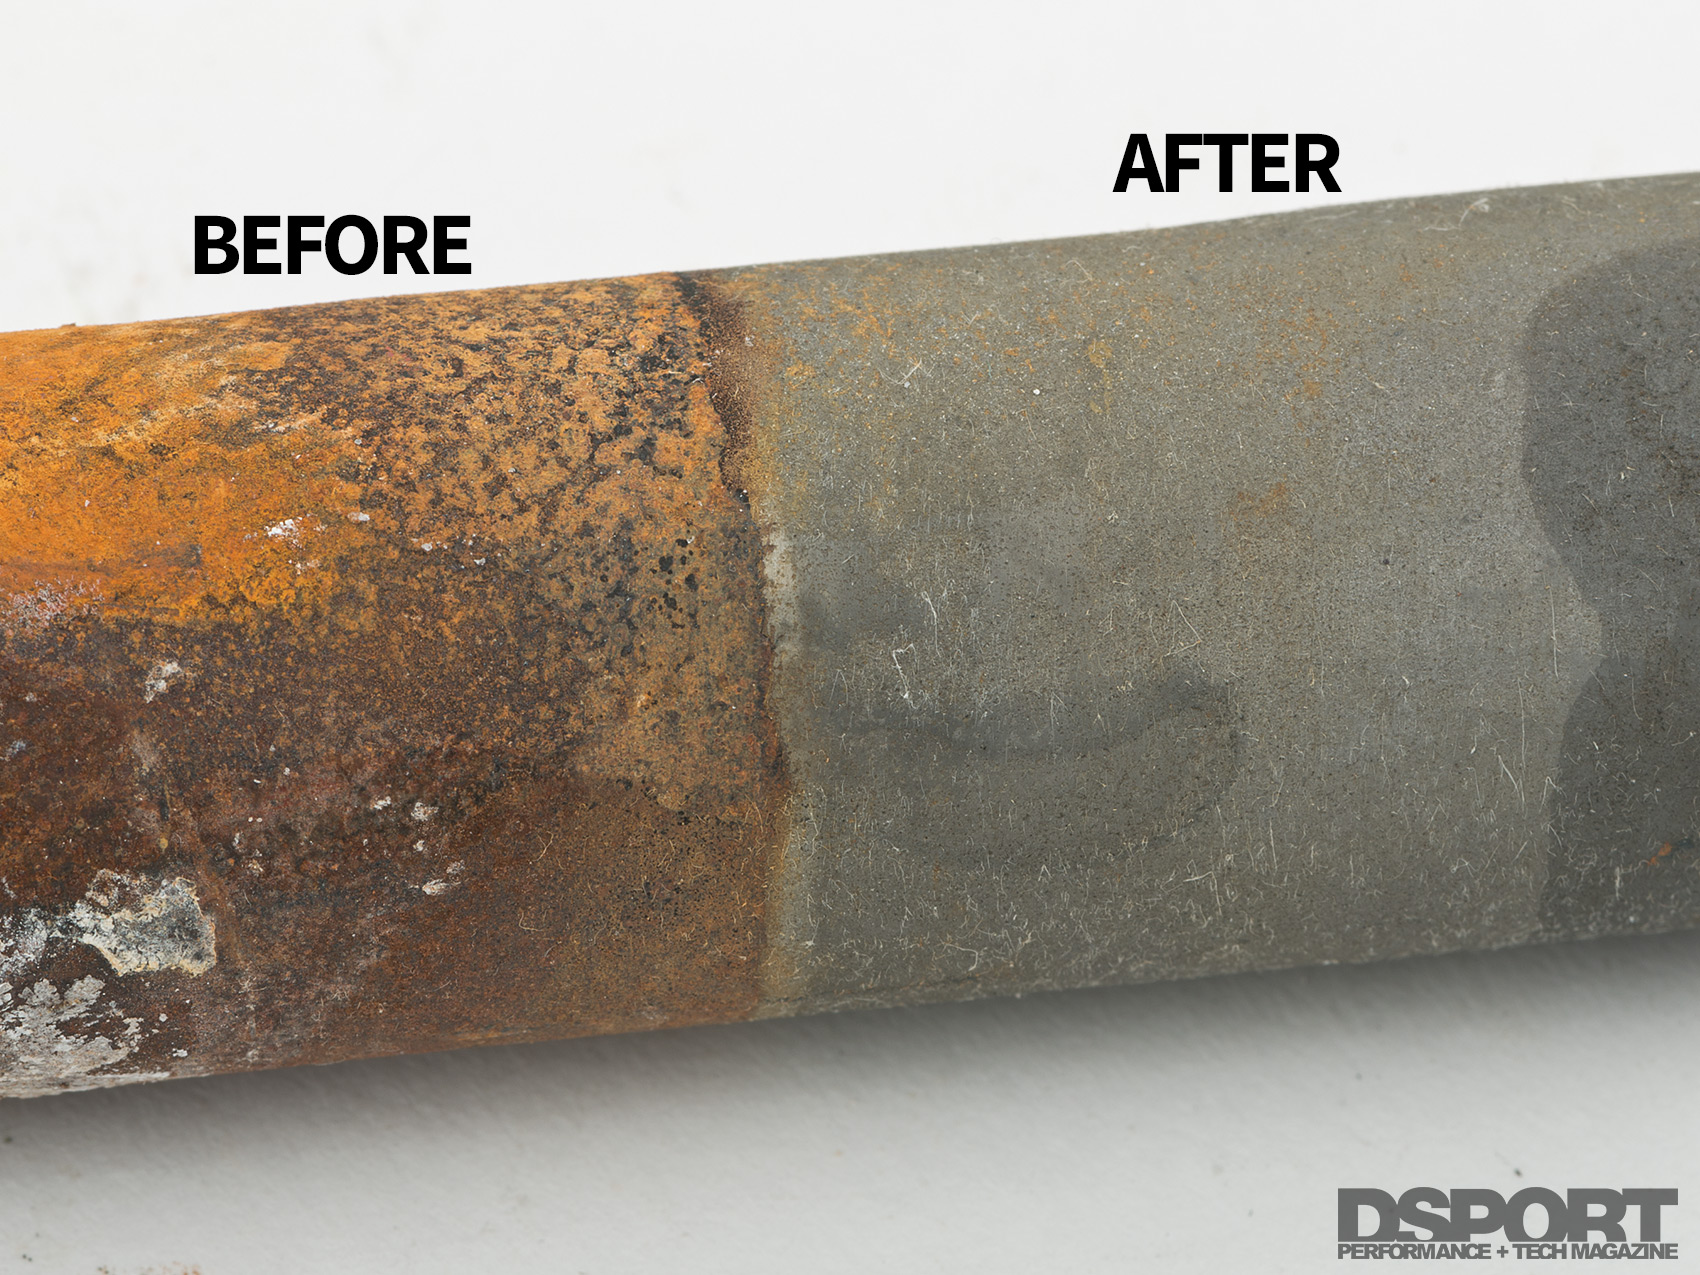 Surface Rust Removal: Eliminate the Iron Oxide, Bring Out the ...